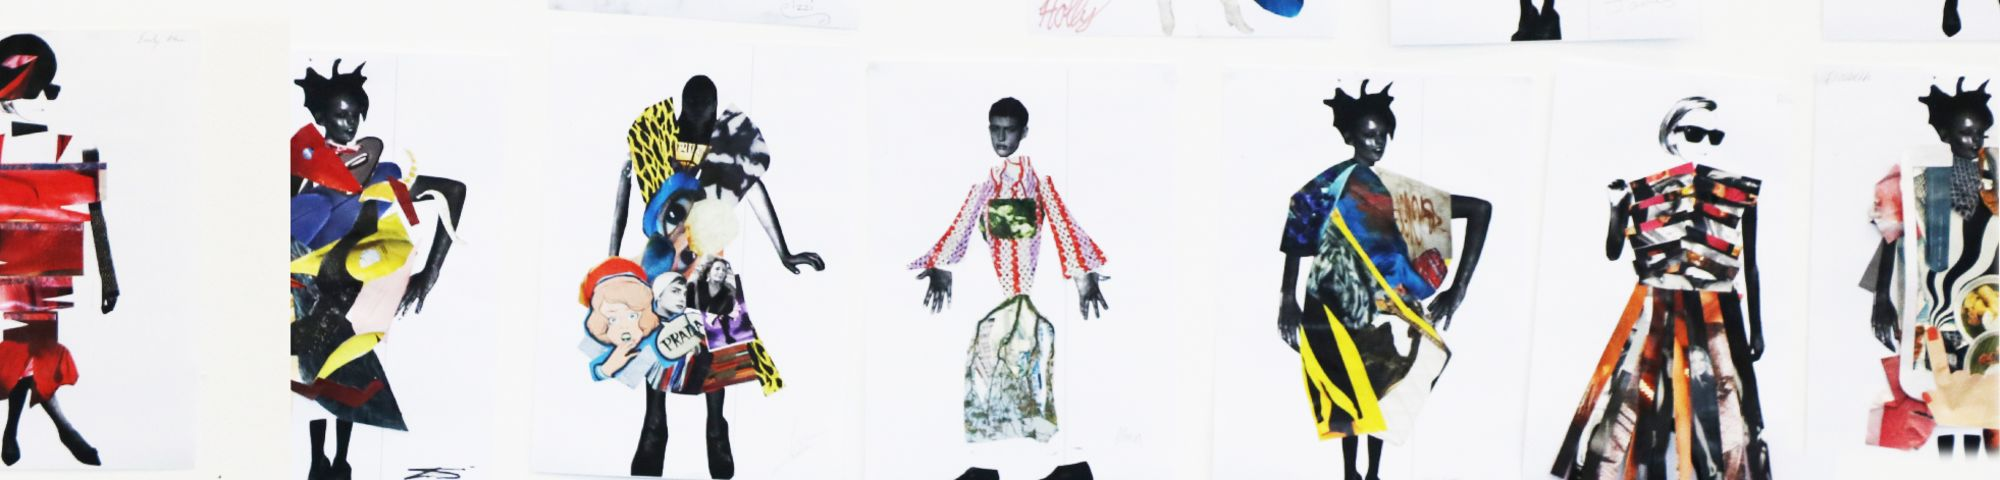 Fashion collage work made by teenage students.